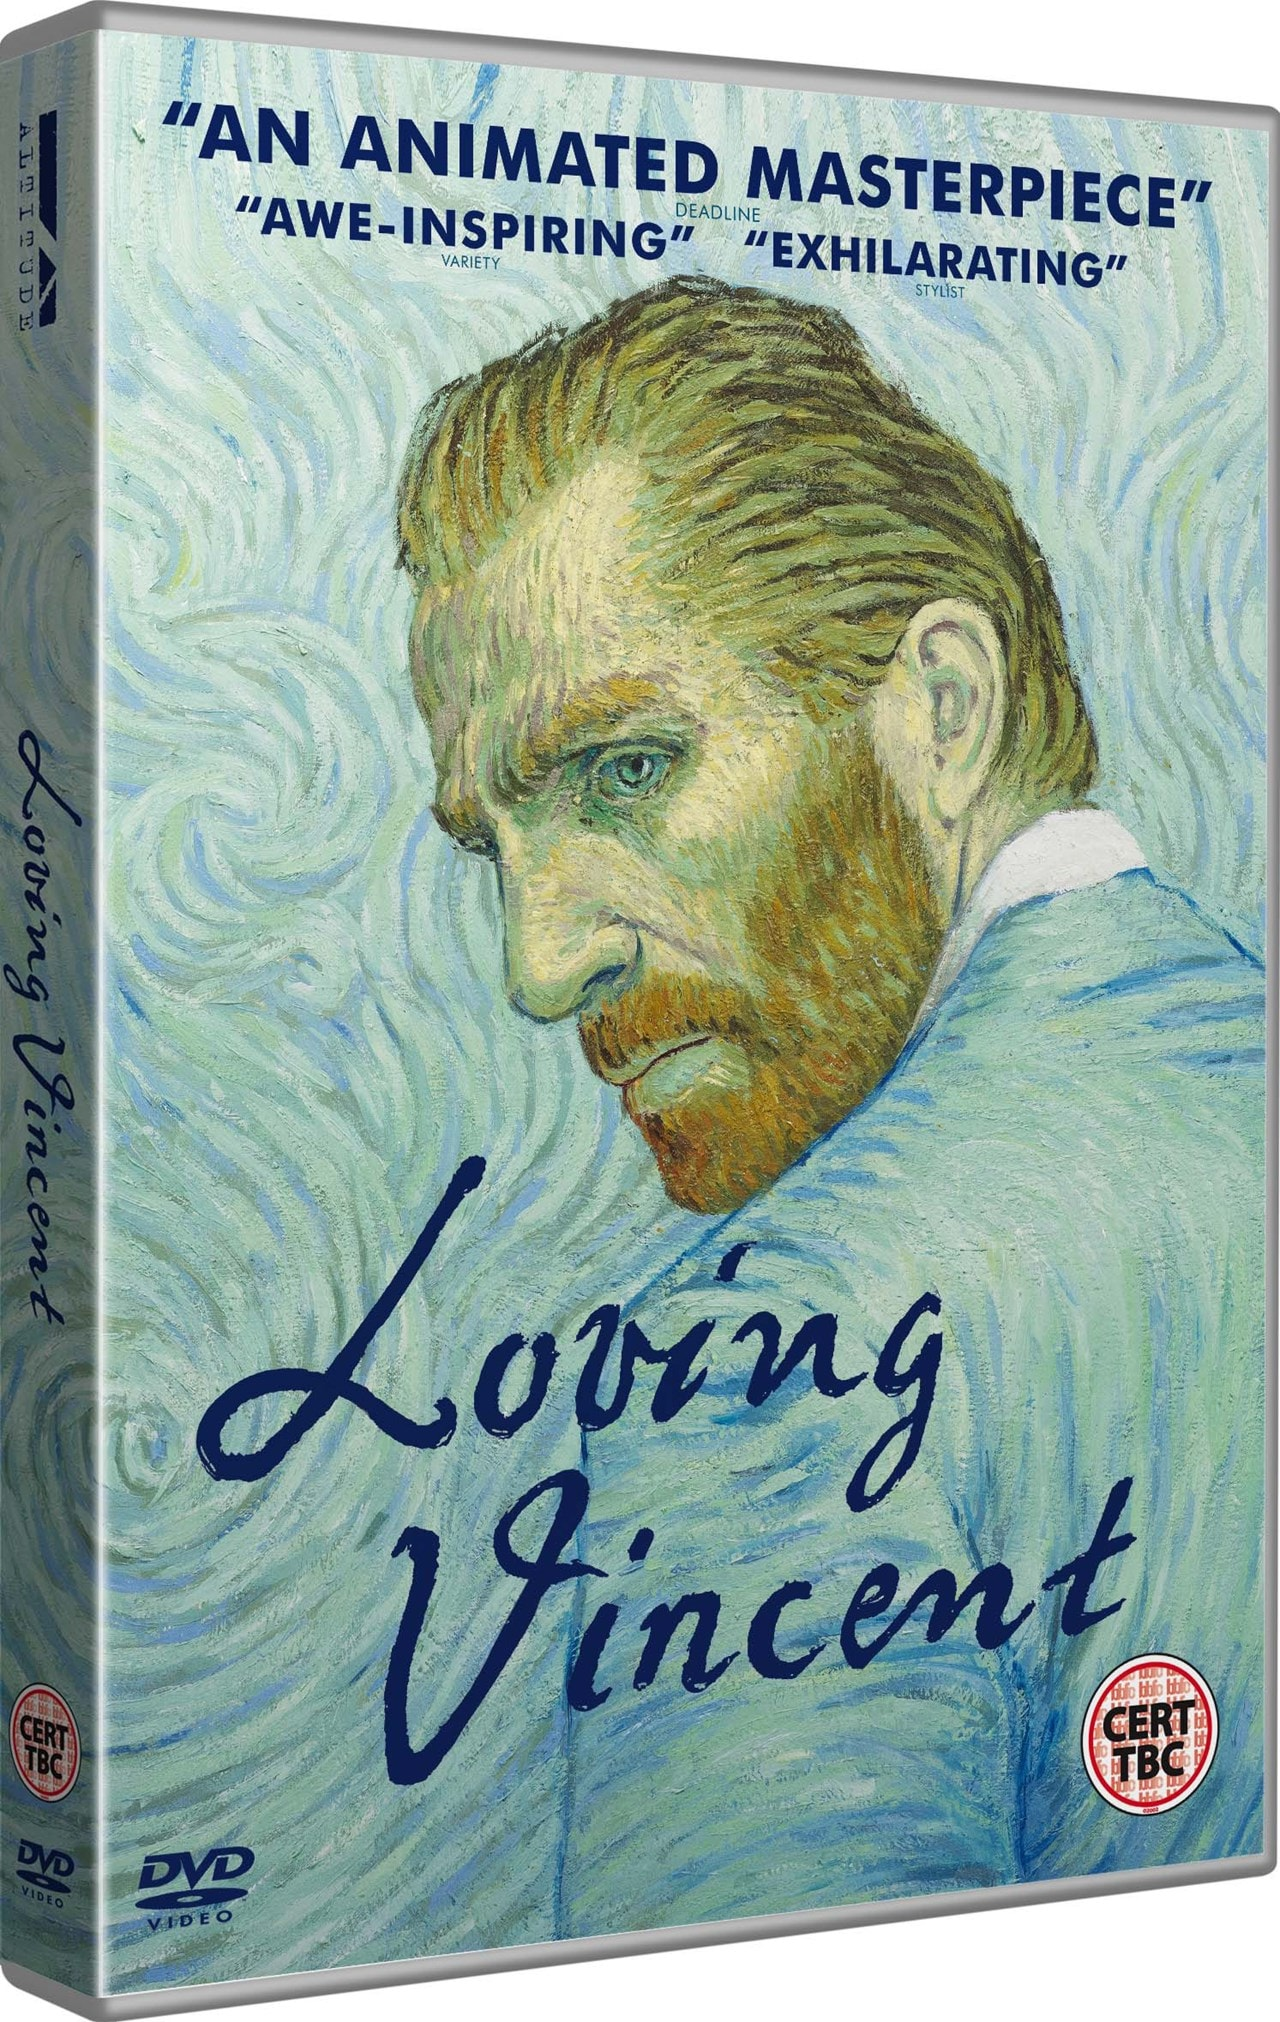 Loving Vincent | DVD | Free shipping over £20 | HMV Store